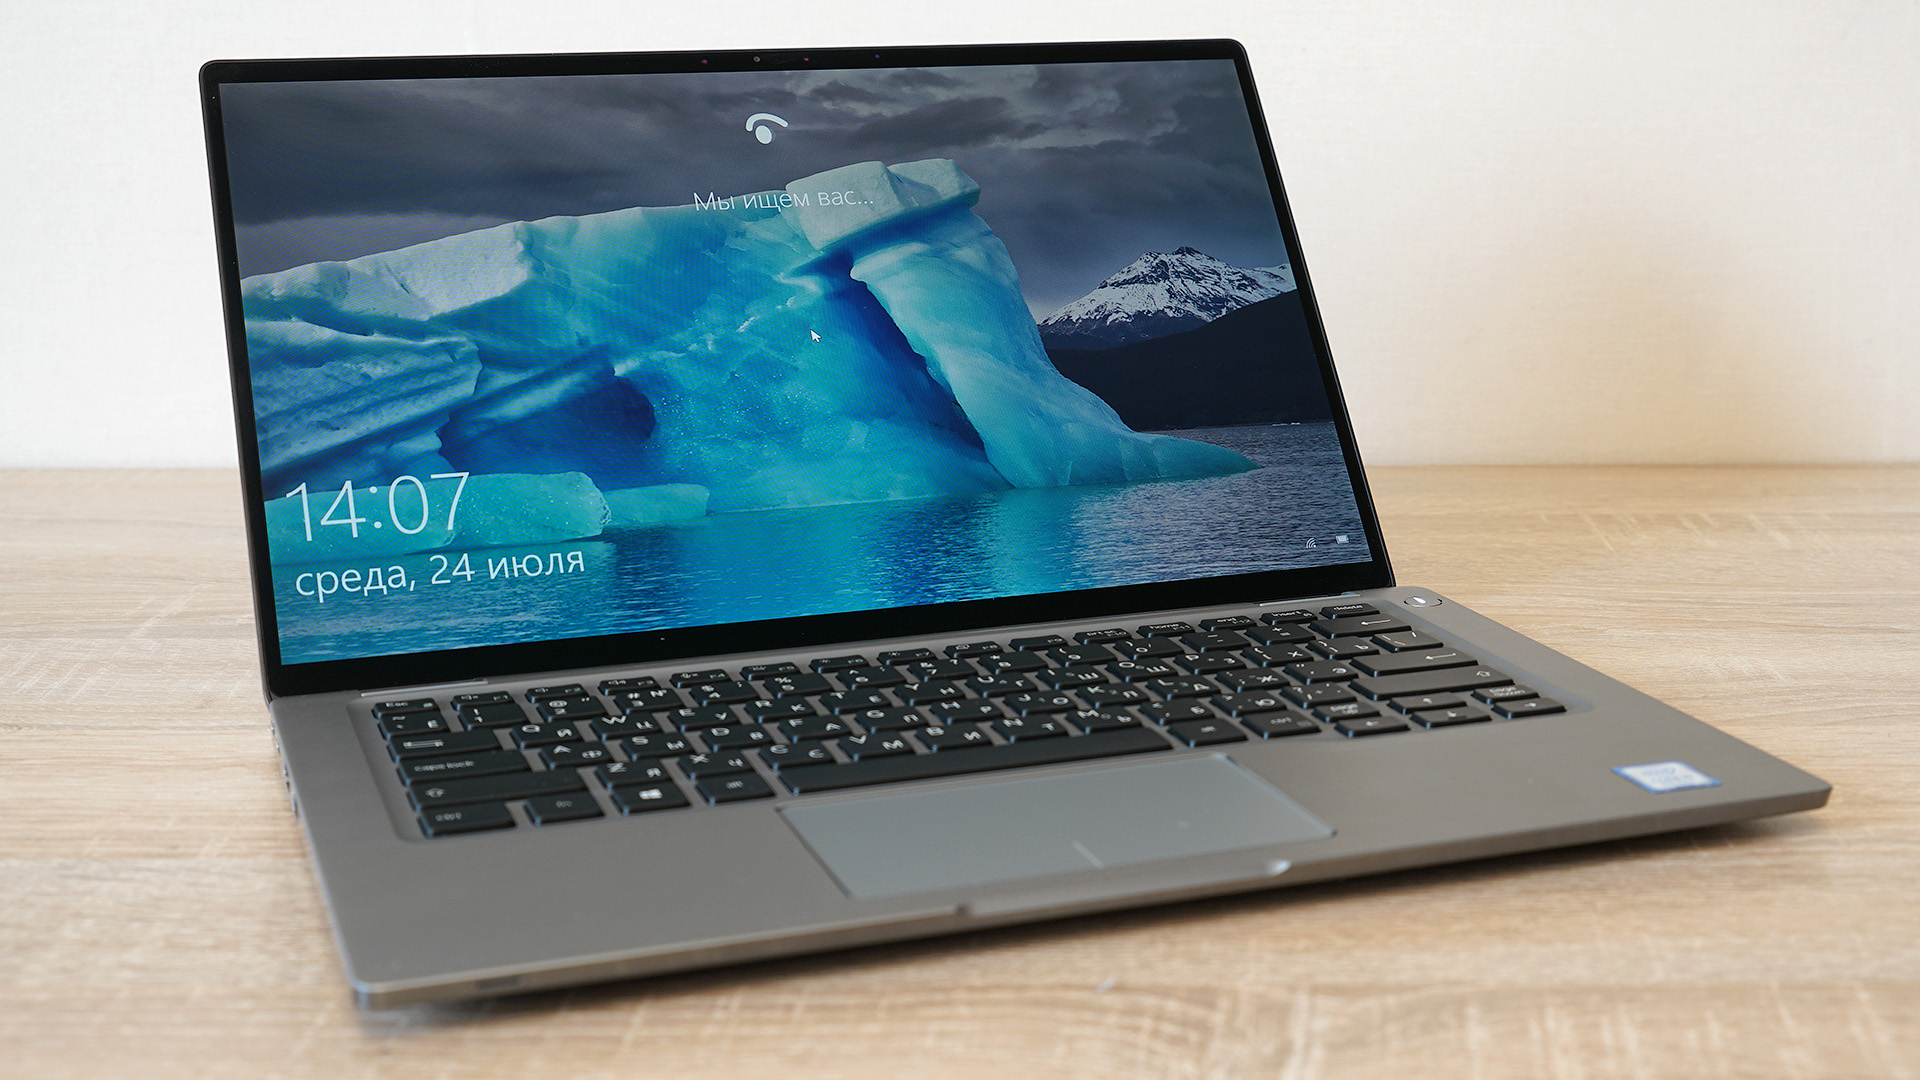 Dell Latitude 7400 2-in-1: a beautiful and lightweight